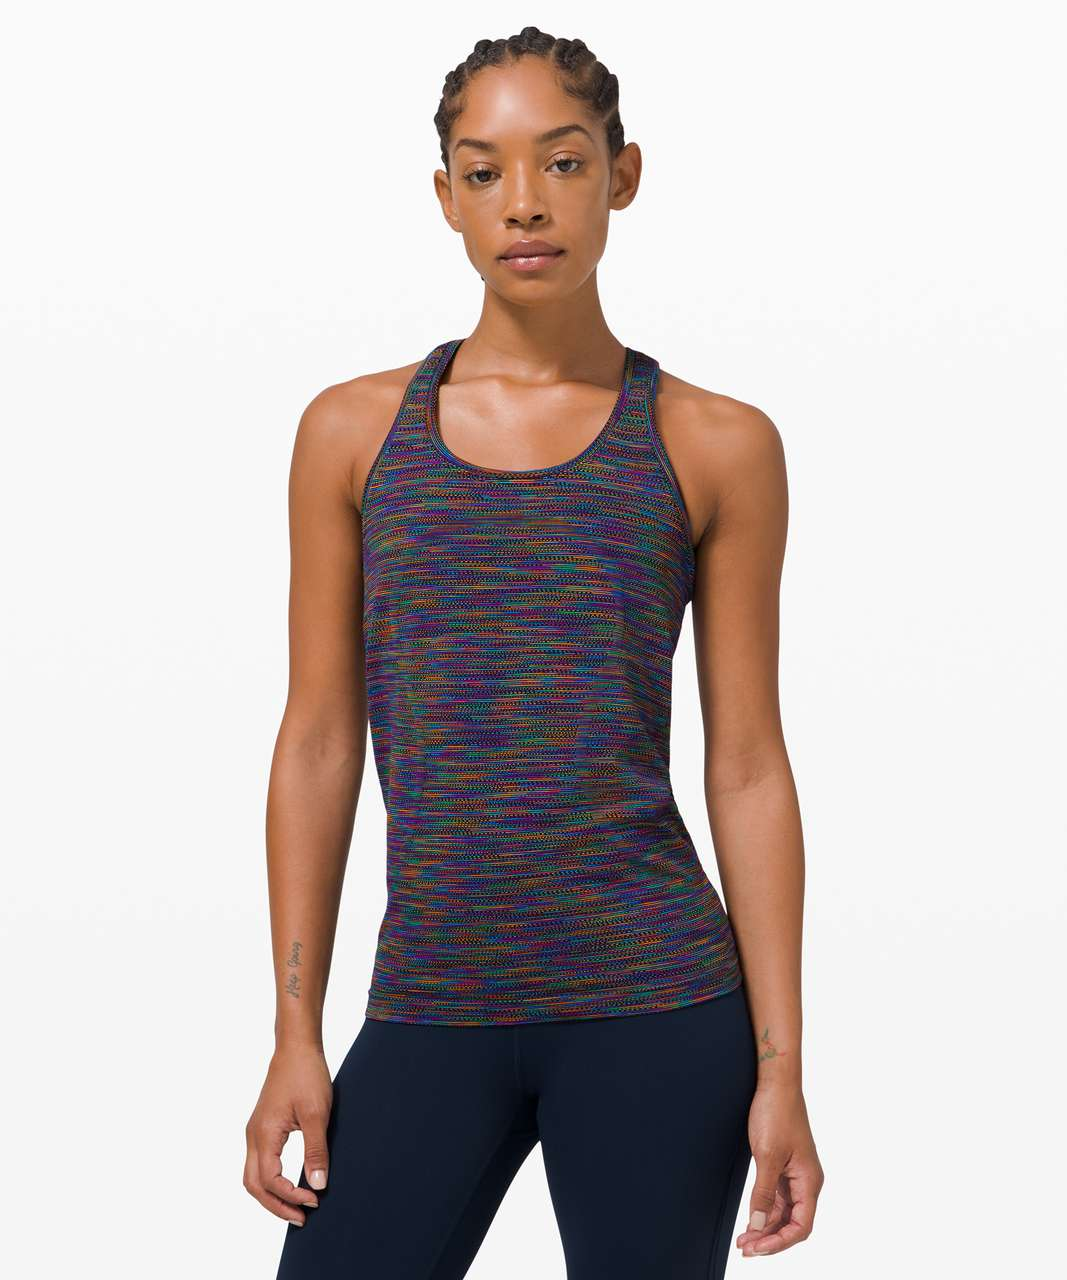 Lululemon Swiftly Tech Racerback 2.0 *Love - Black / Rainbow